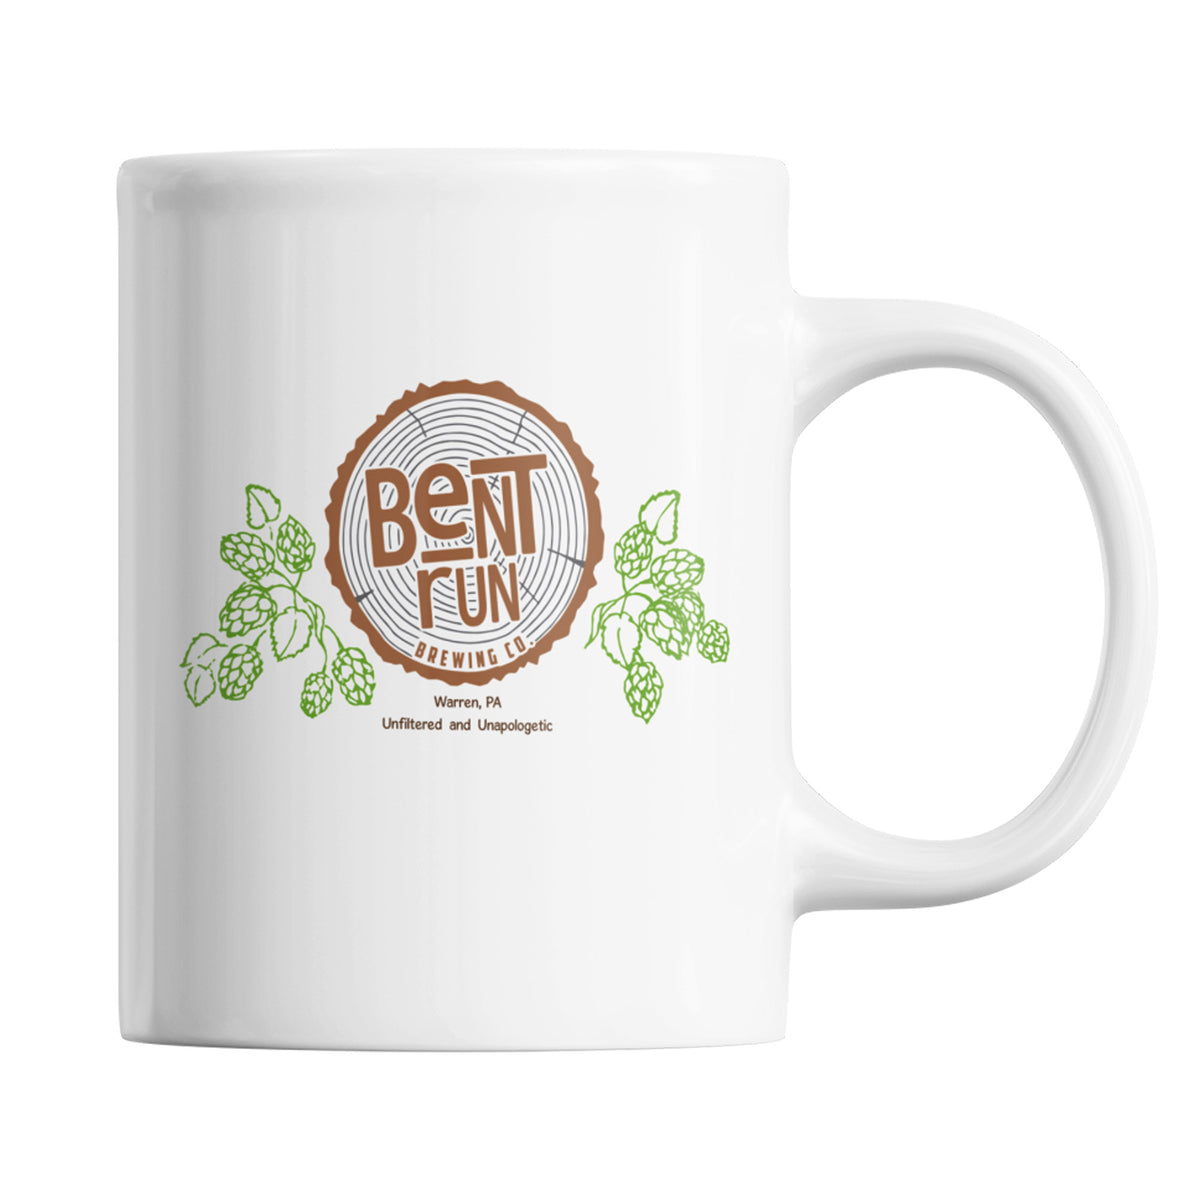 Bent Run Brewing We Support PA Coffee Mug